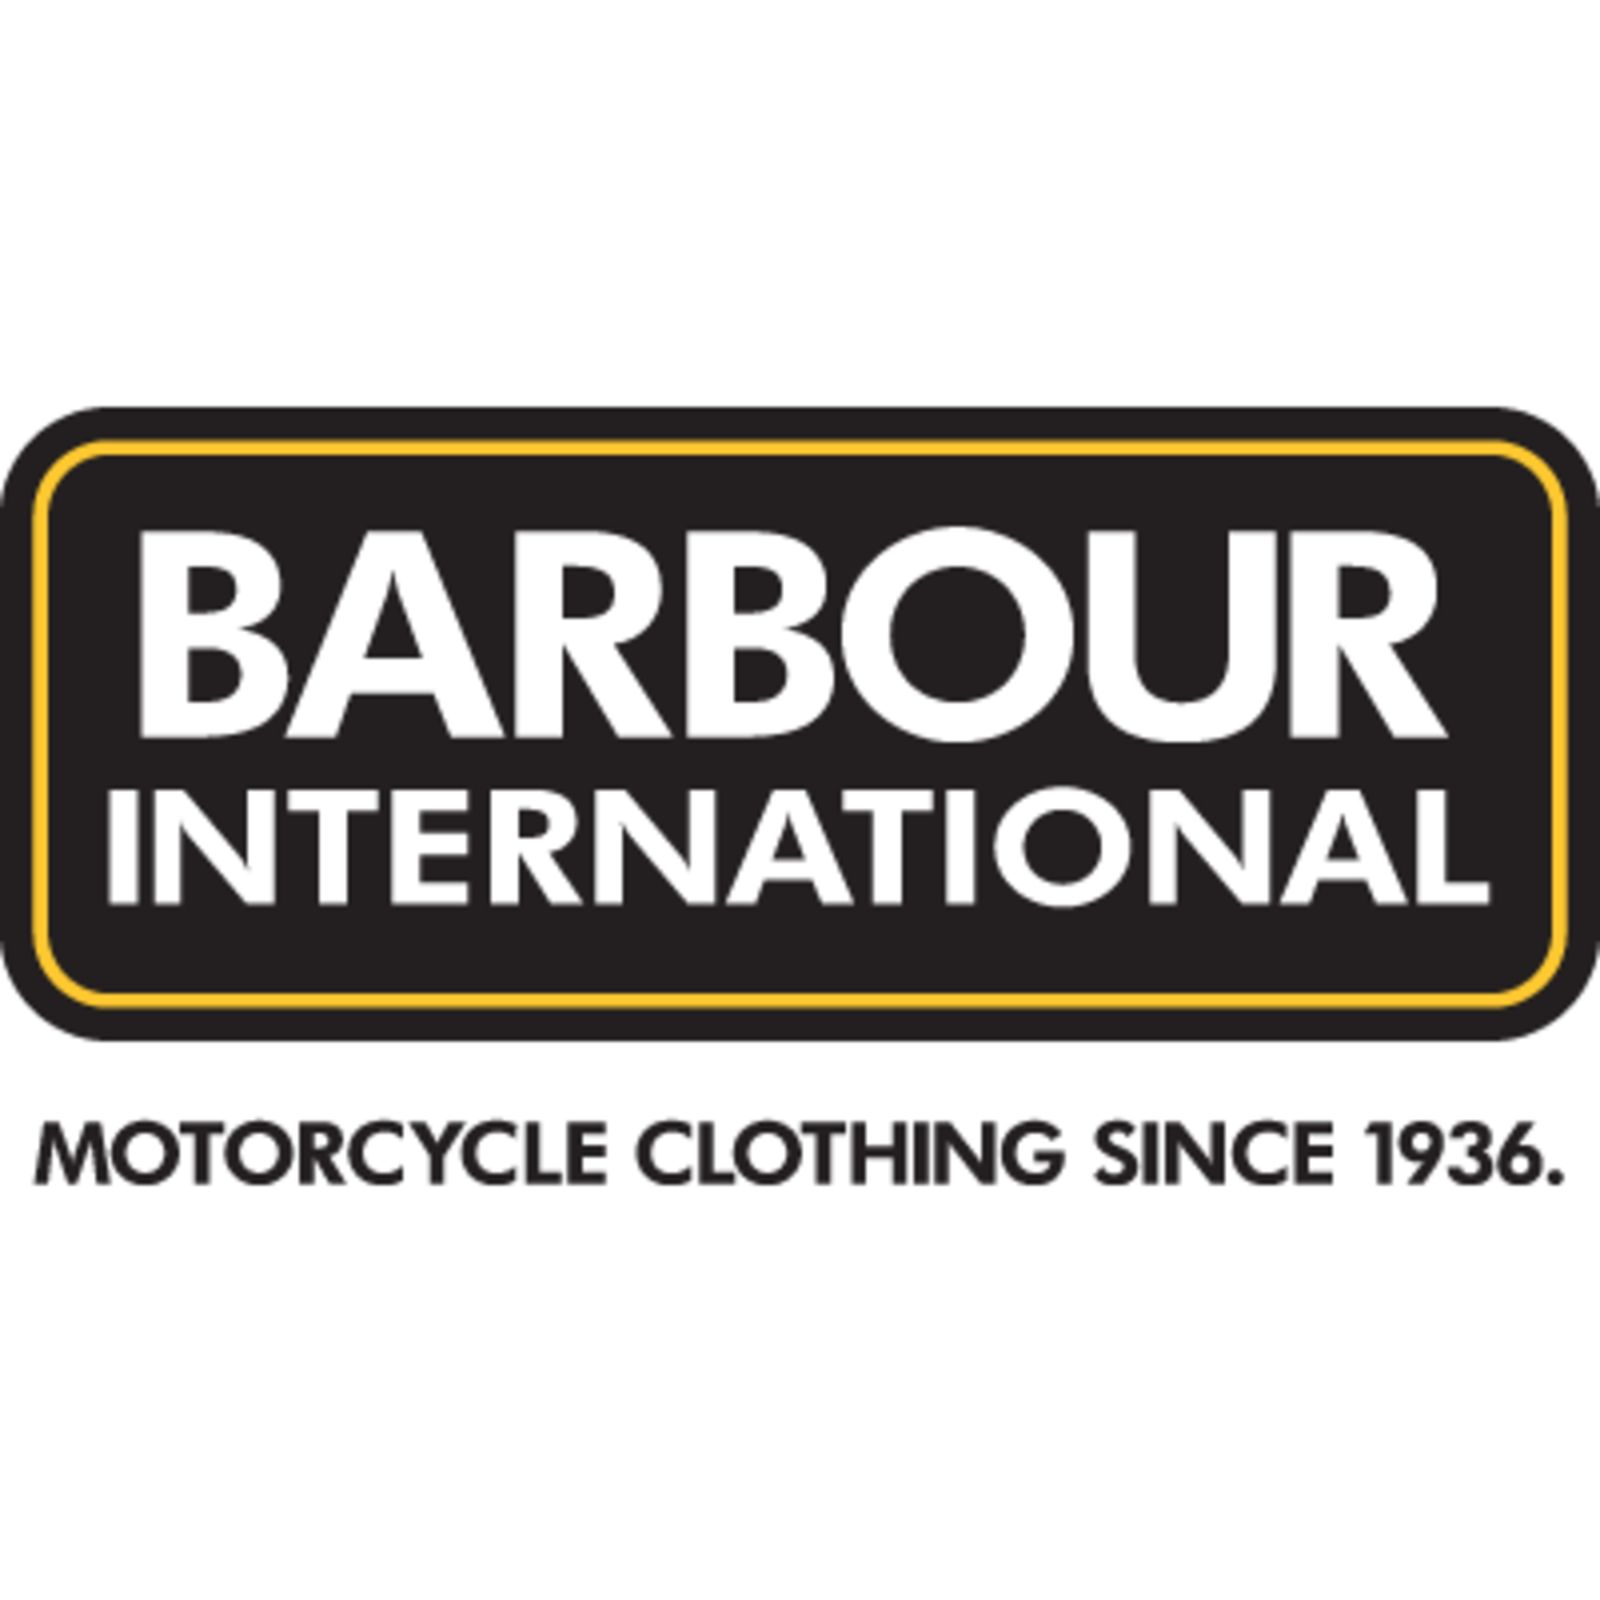 Barbour International (Afbeelding 1)